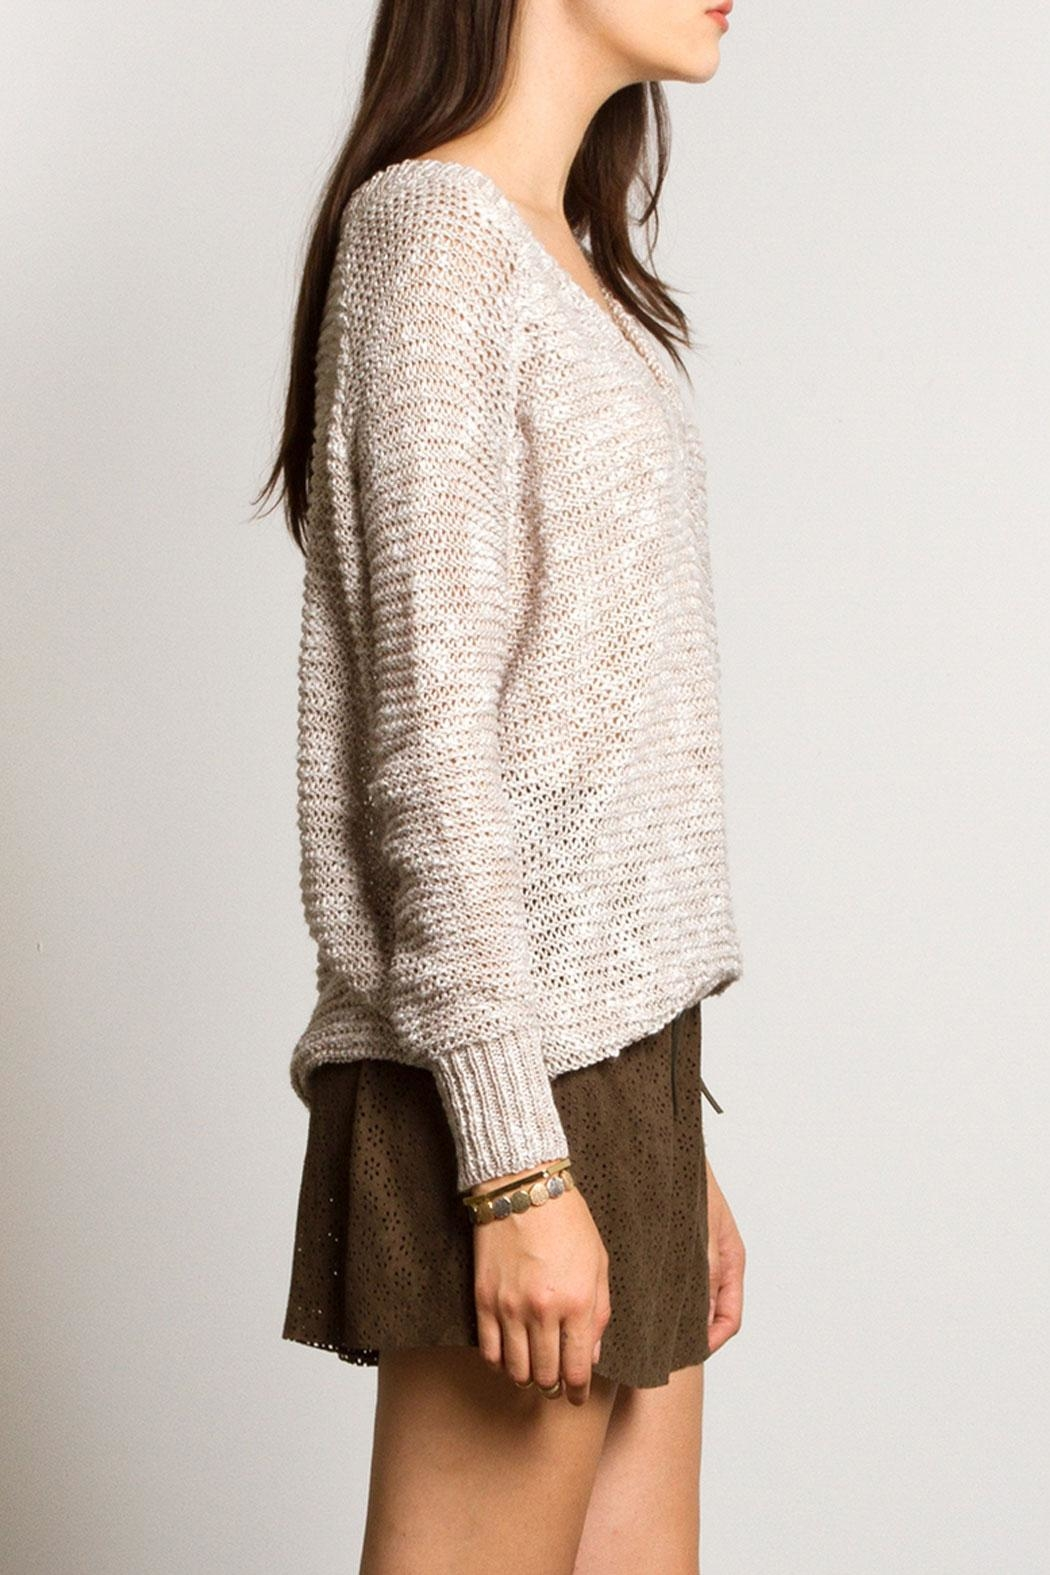 Sans Souci Jessica Crochet Sweater - Side Cropped Image